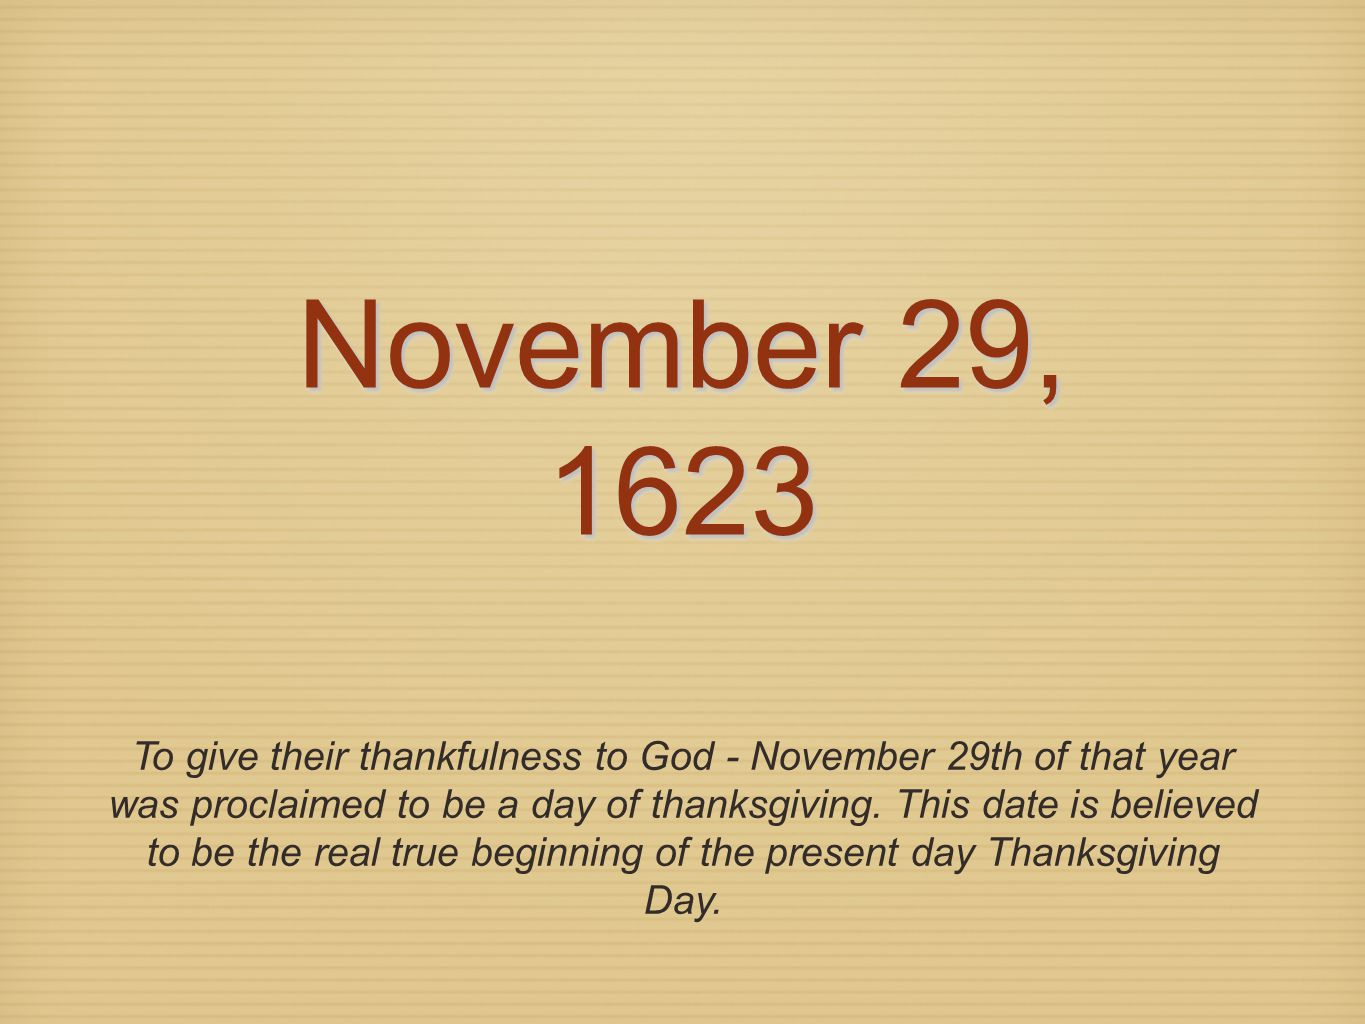 To give their thankfulness to God - November 29th of that year was proclaimed to be a day of thanksgiving. This date is believed to be the real true b